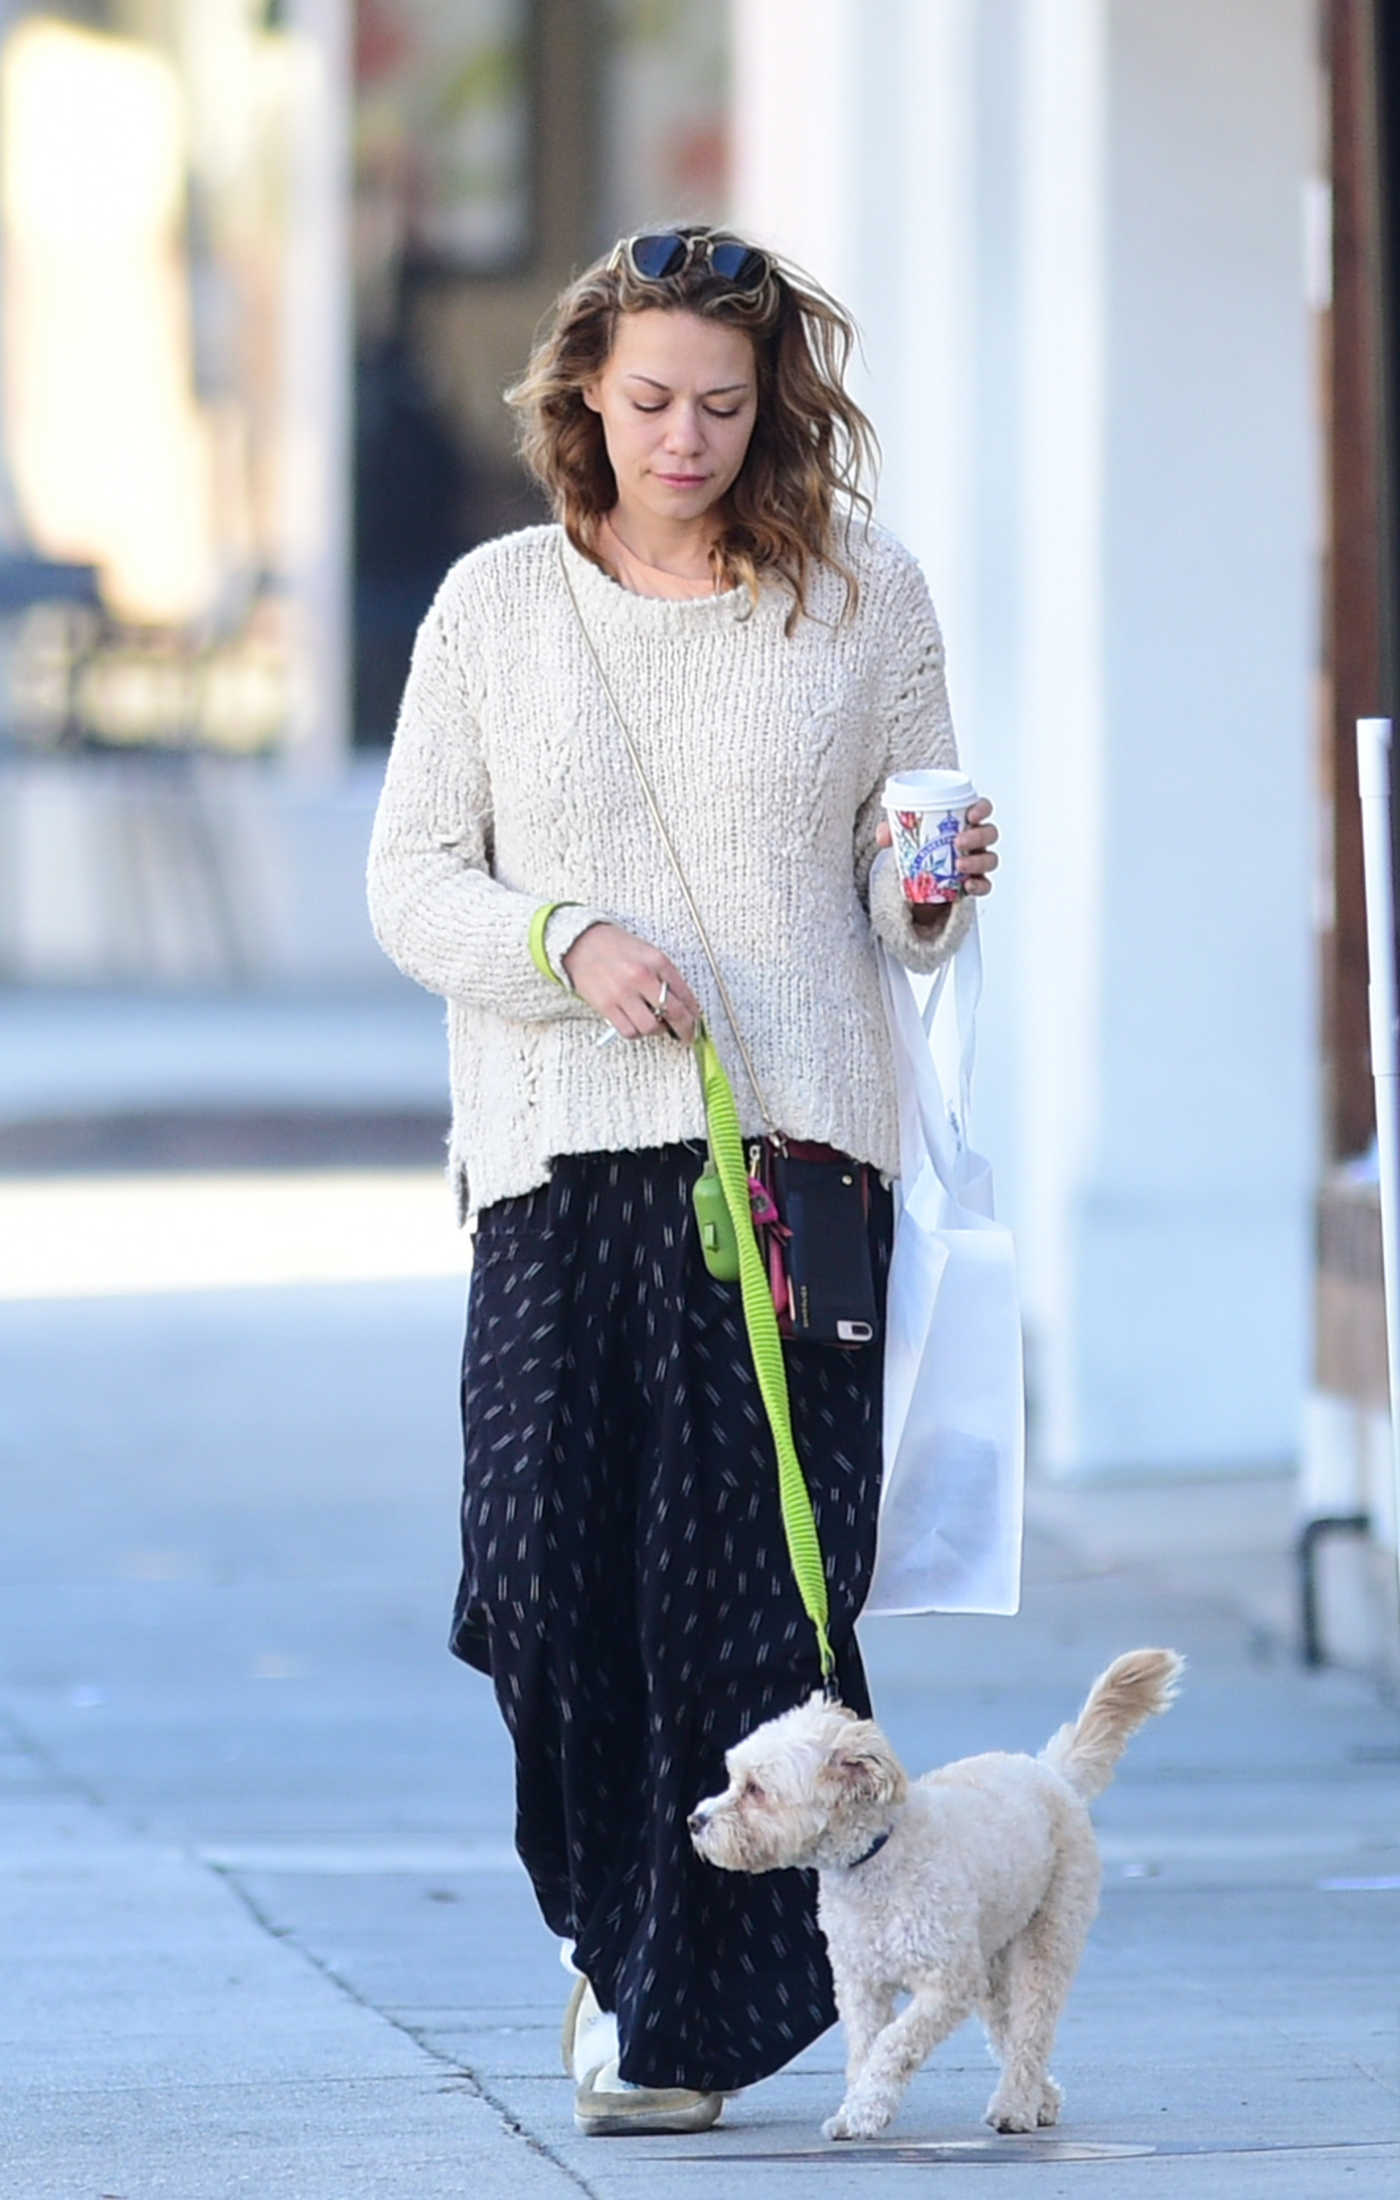 Bethany Joy Lenz in a Beige Sweater Walks Her Dog Out in Los Angeles 11/24/2018